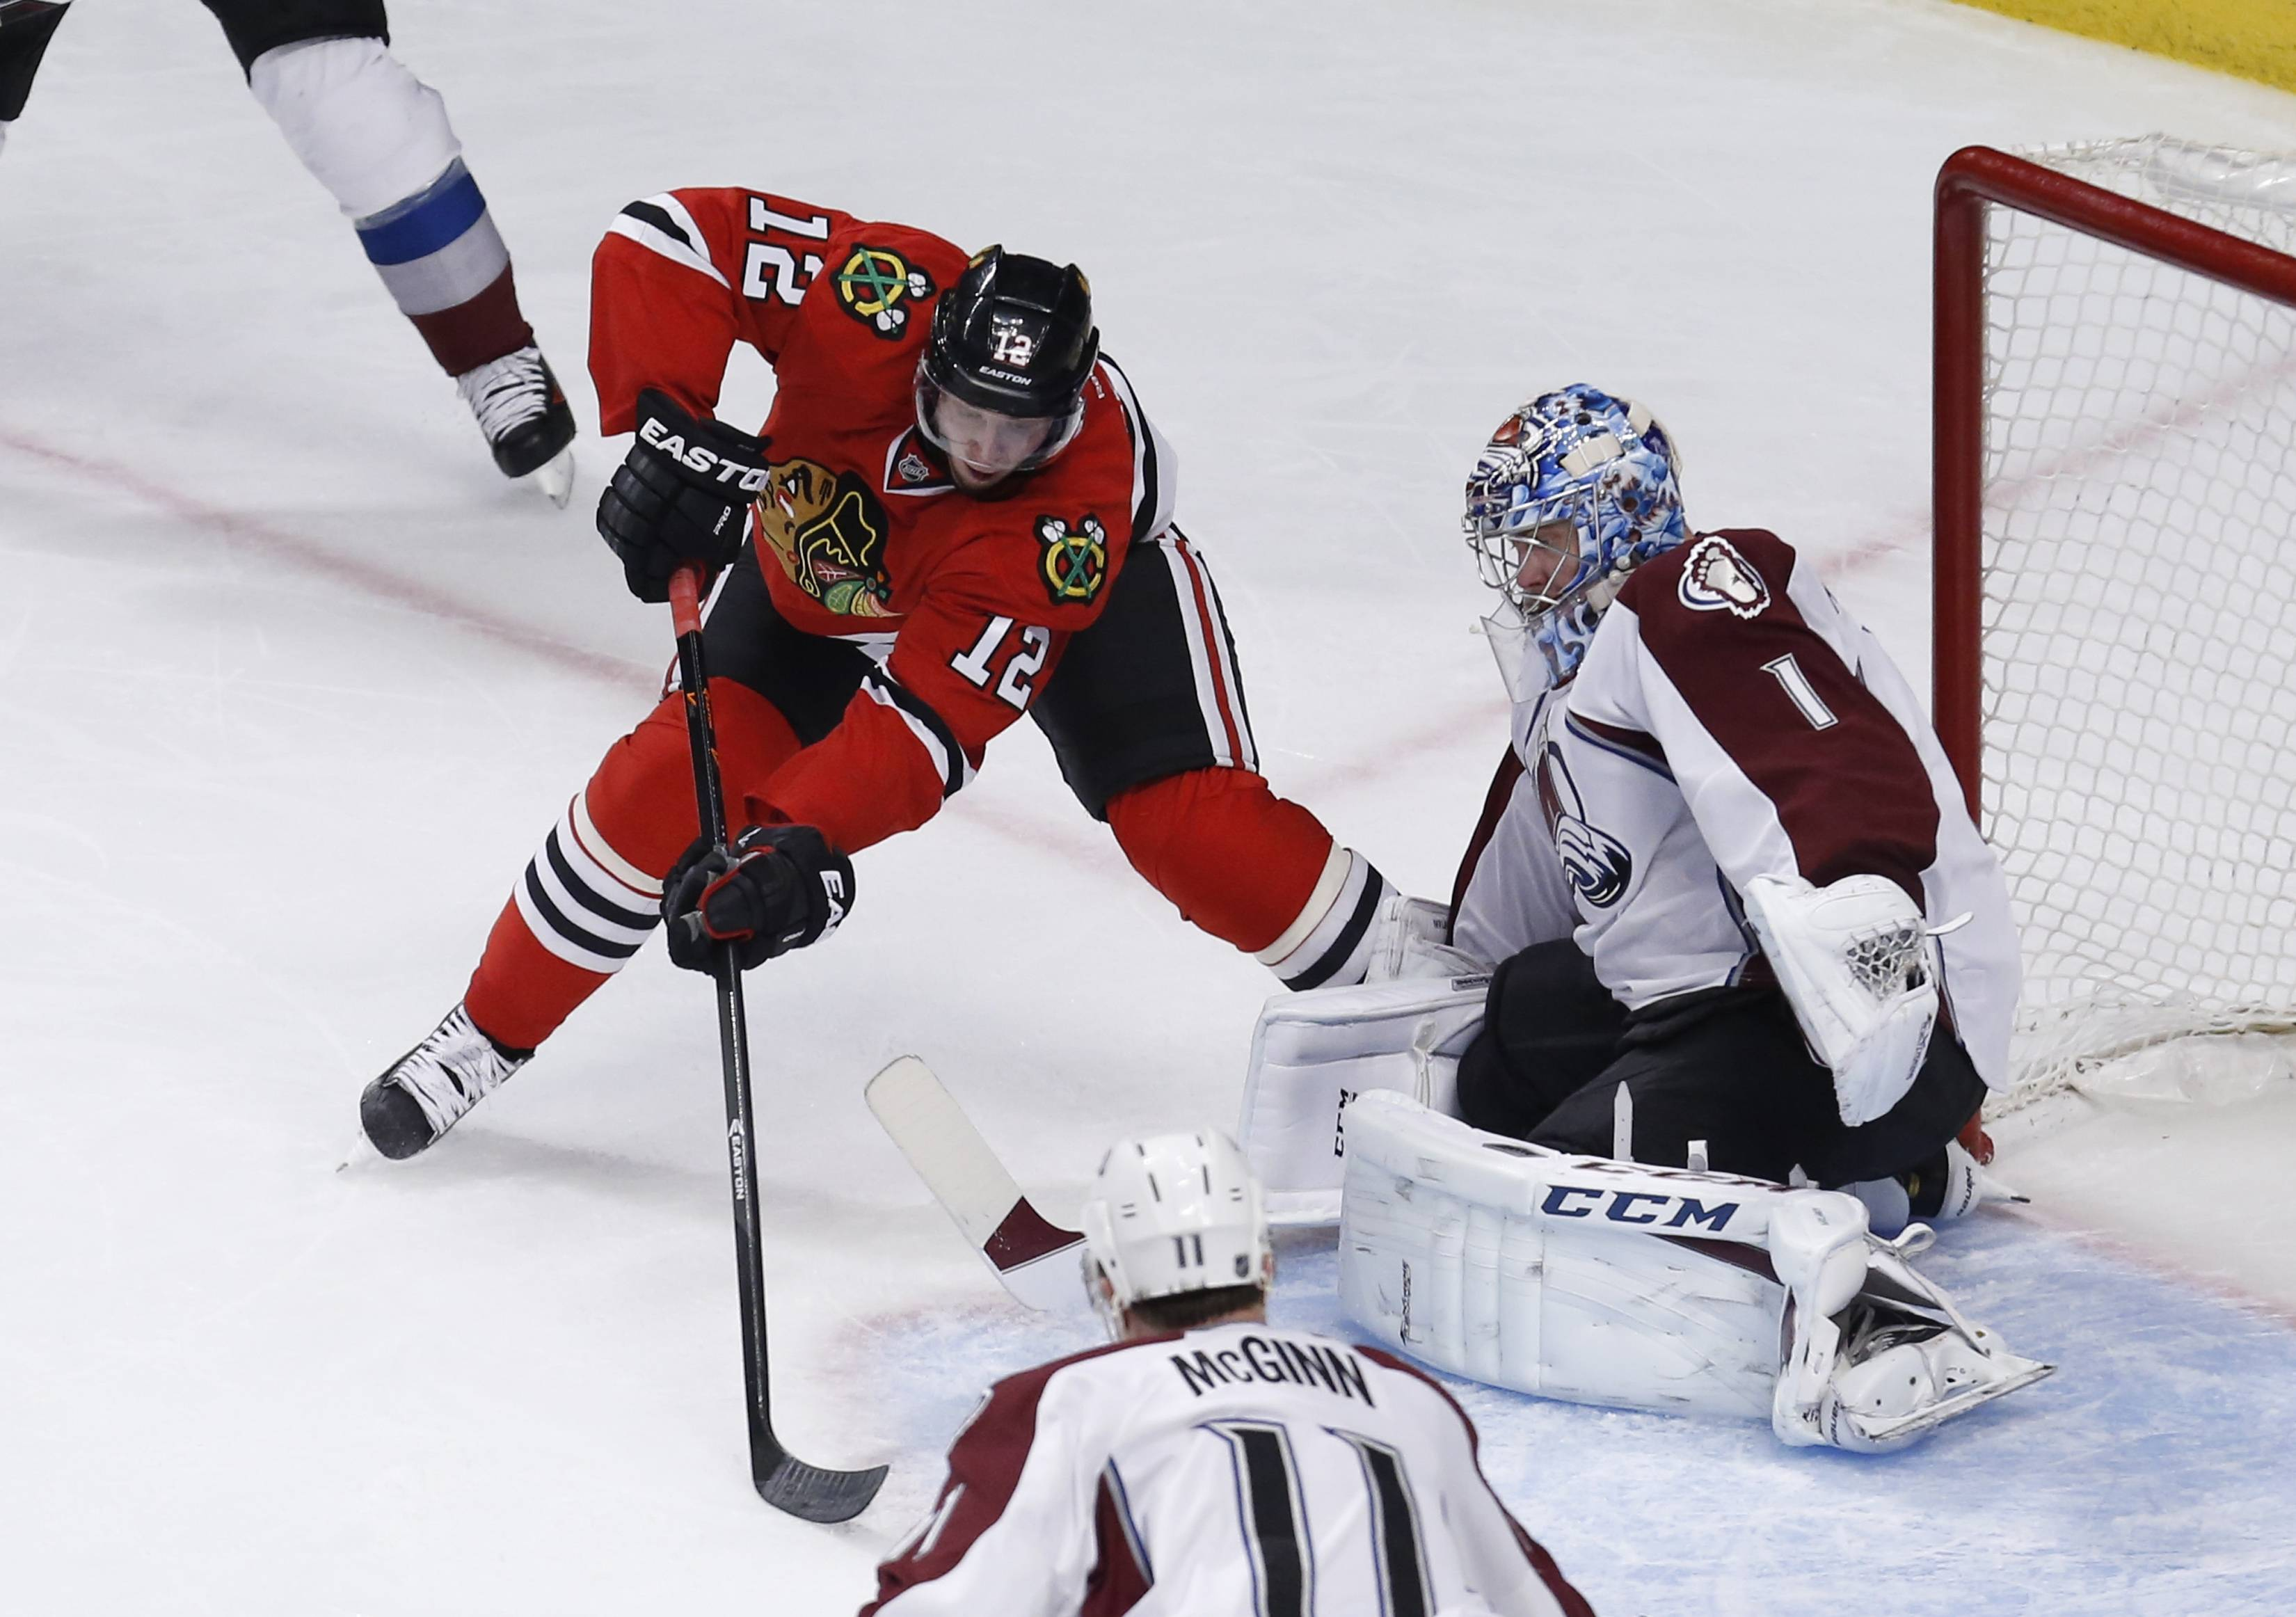 Avalanche goalie Semyon Varlamov makes a save on a shot by Blackhawks center Peter Regin during the second period Tuesday night.